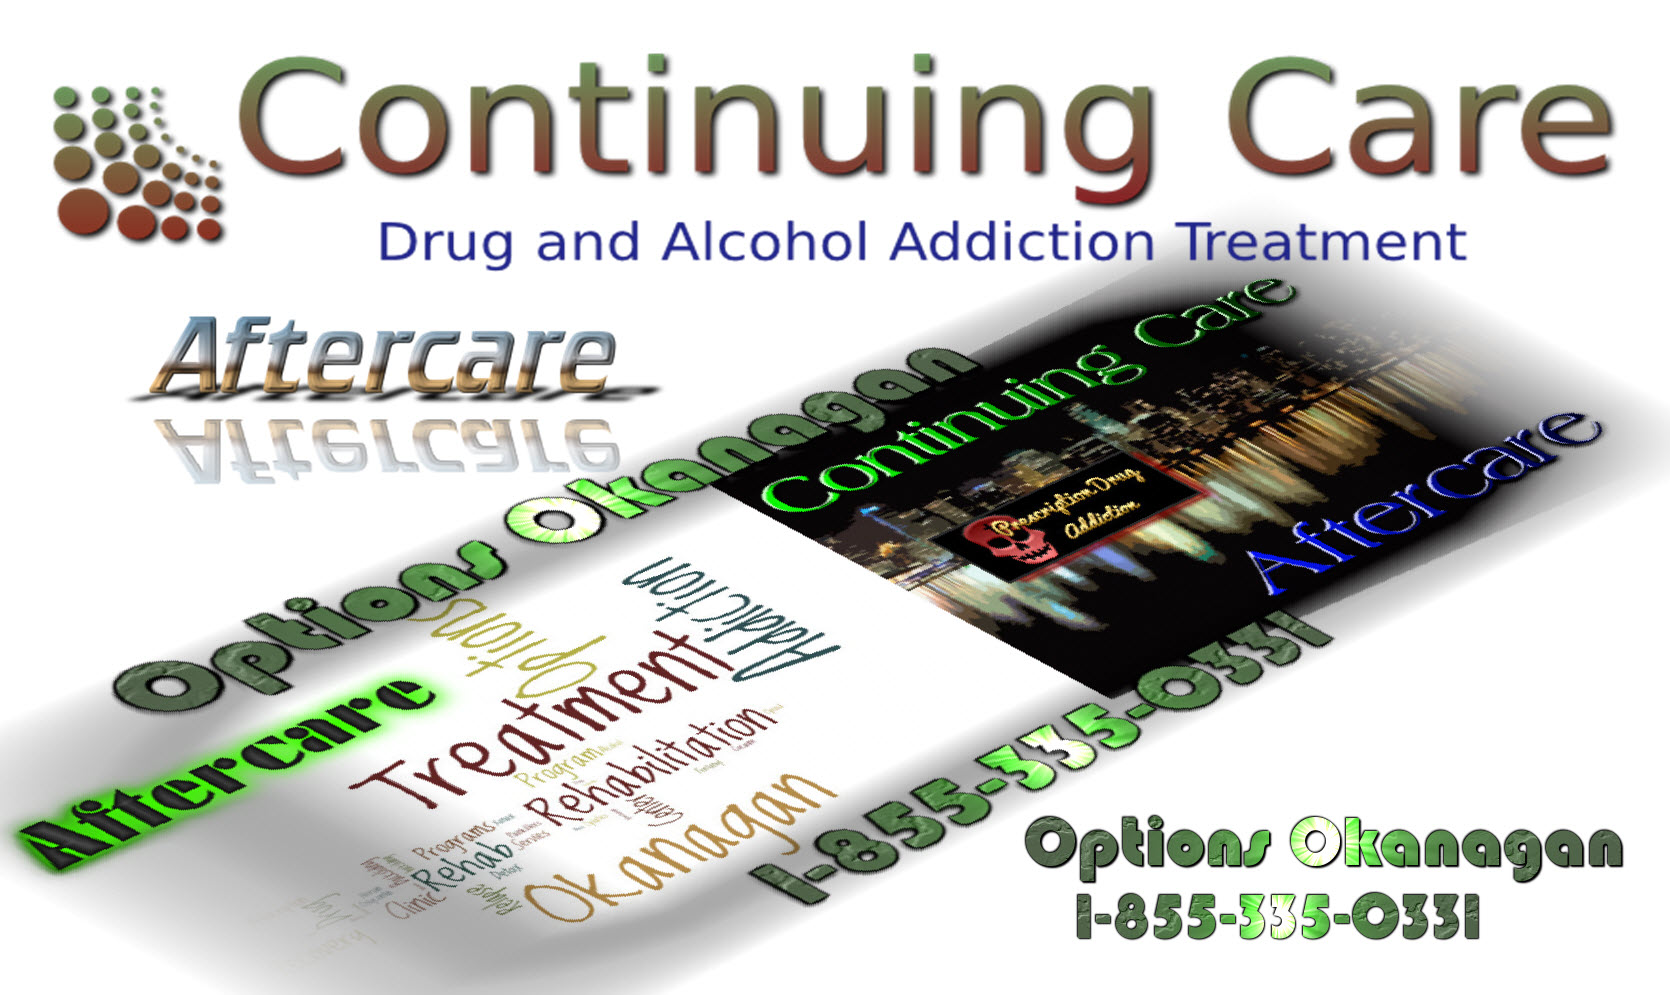 ... Recovery After Treatment In Vancouver, BC - Options Okanagan - Options